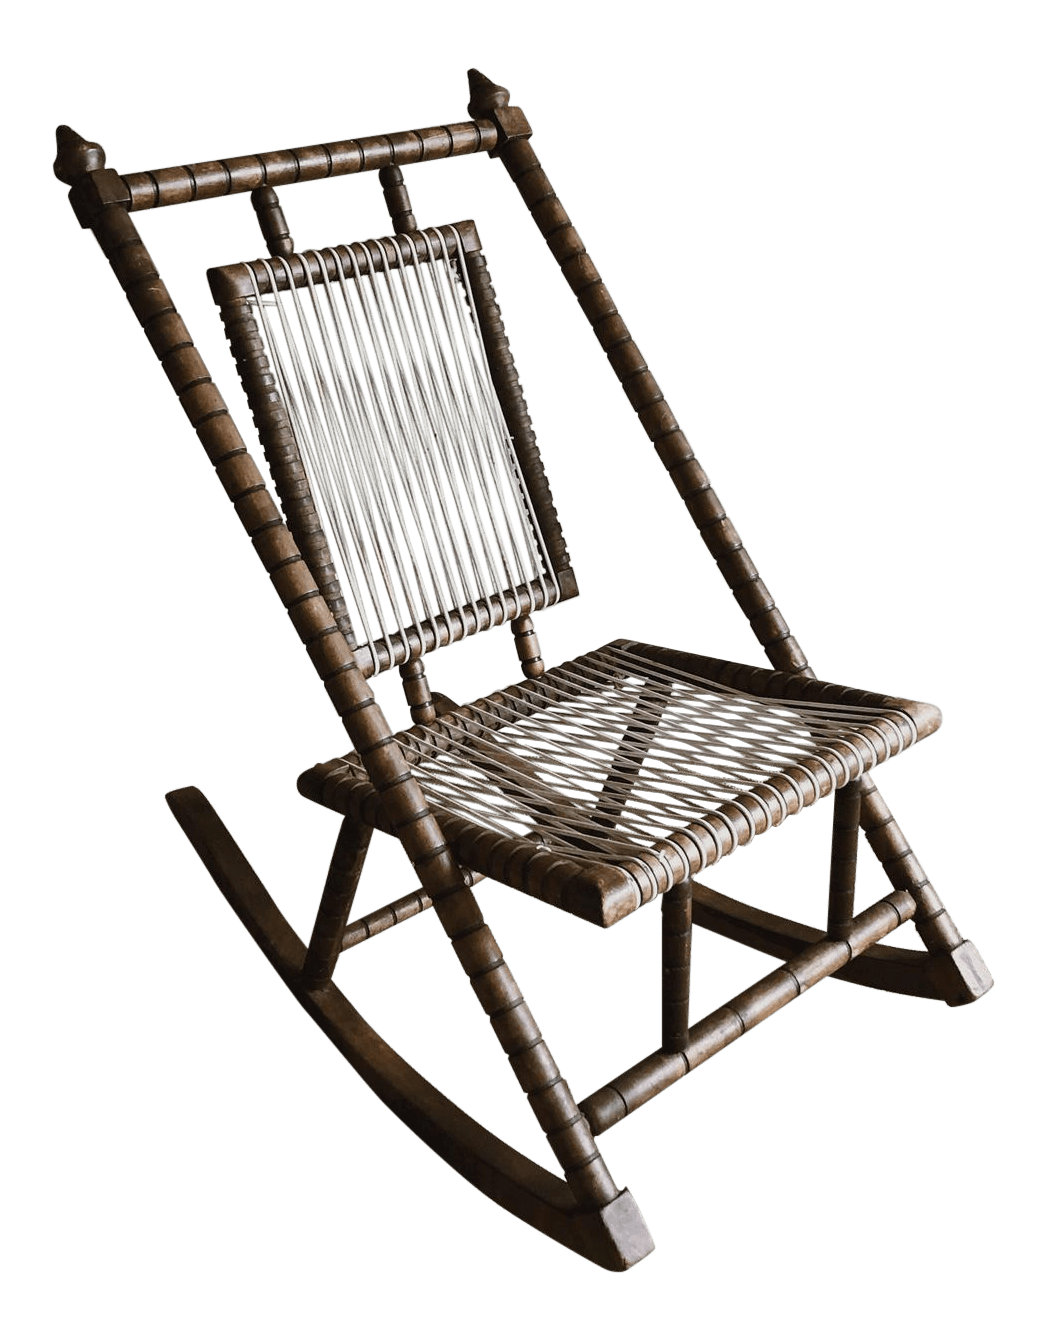 Mexican Rocking Chair 1980s Vintage Mexican Craftsman Wooden Rocker